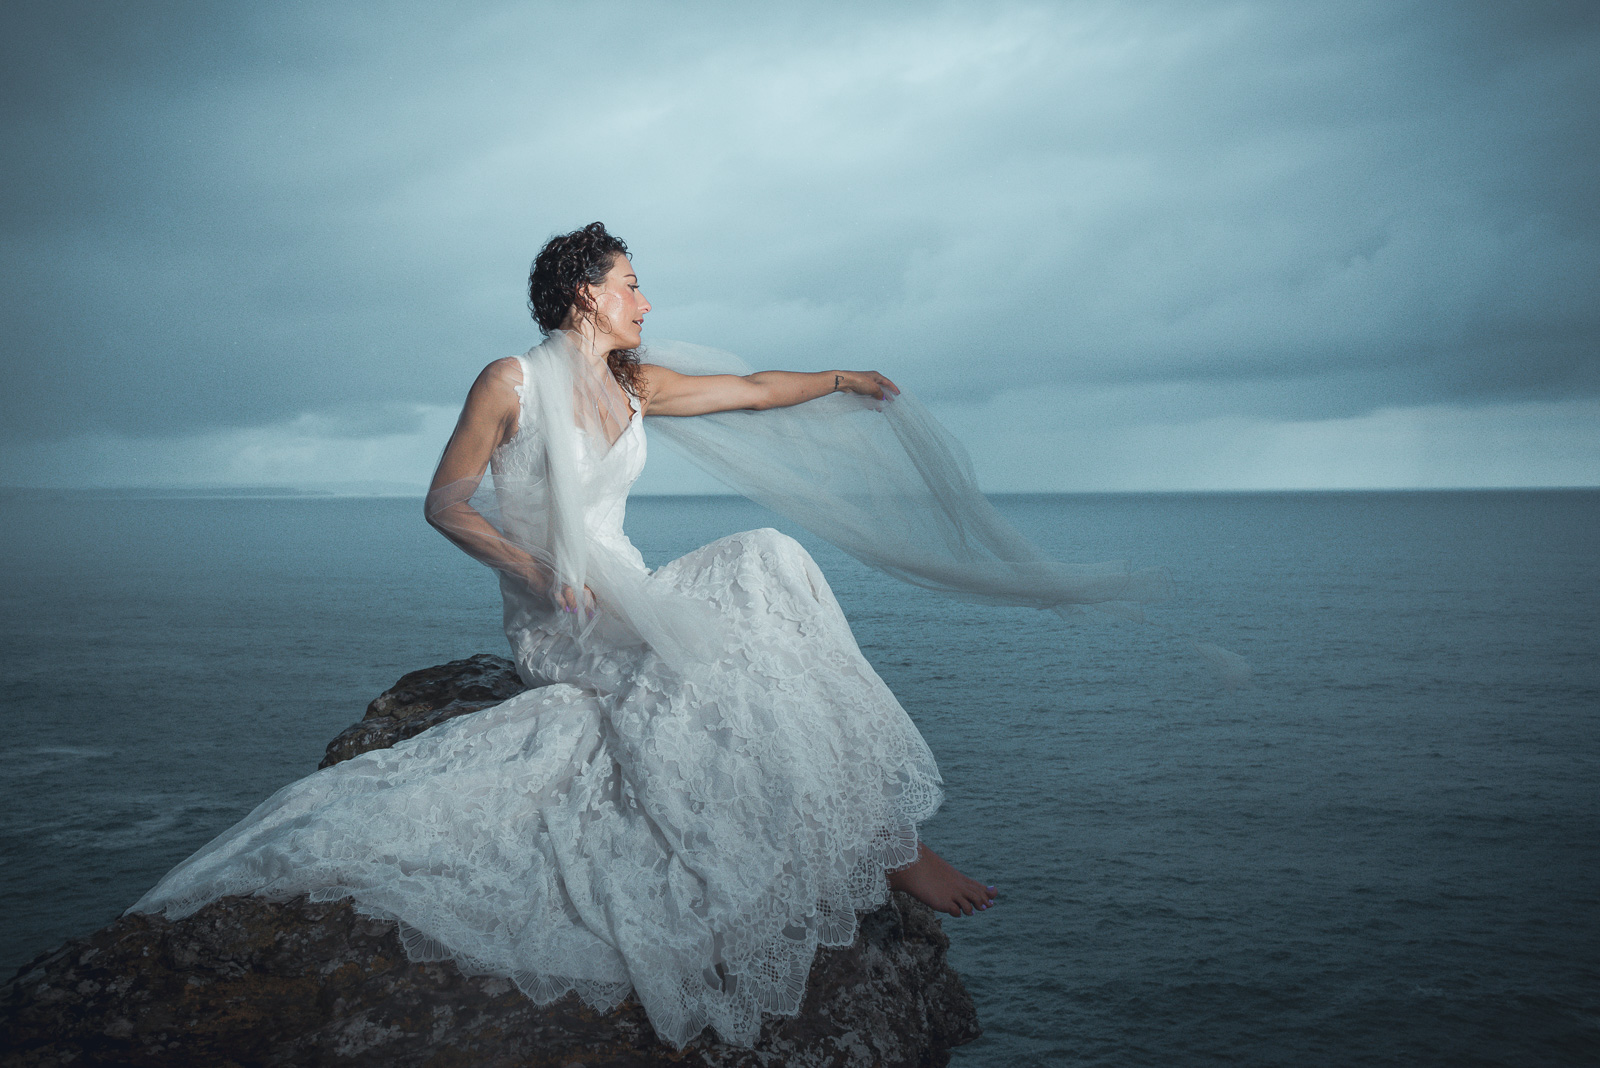 Photography is teamwork – Working on an epic model photography session